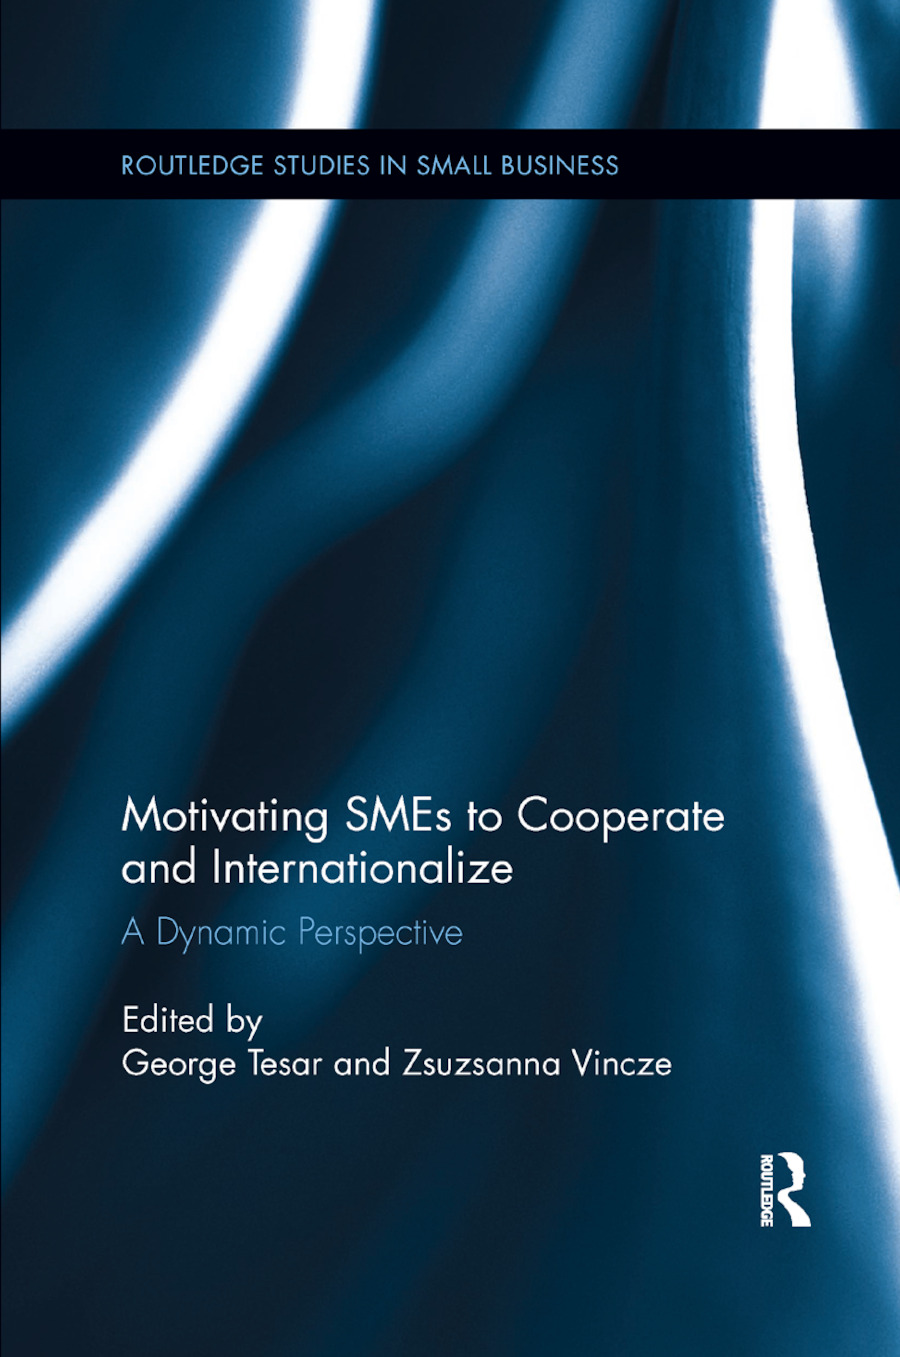 Motivating SMEs to Cooperate and Internationalize